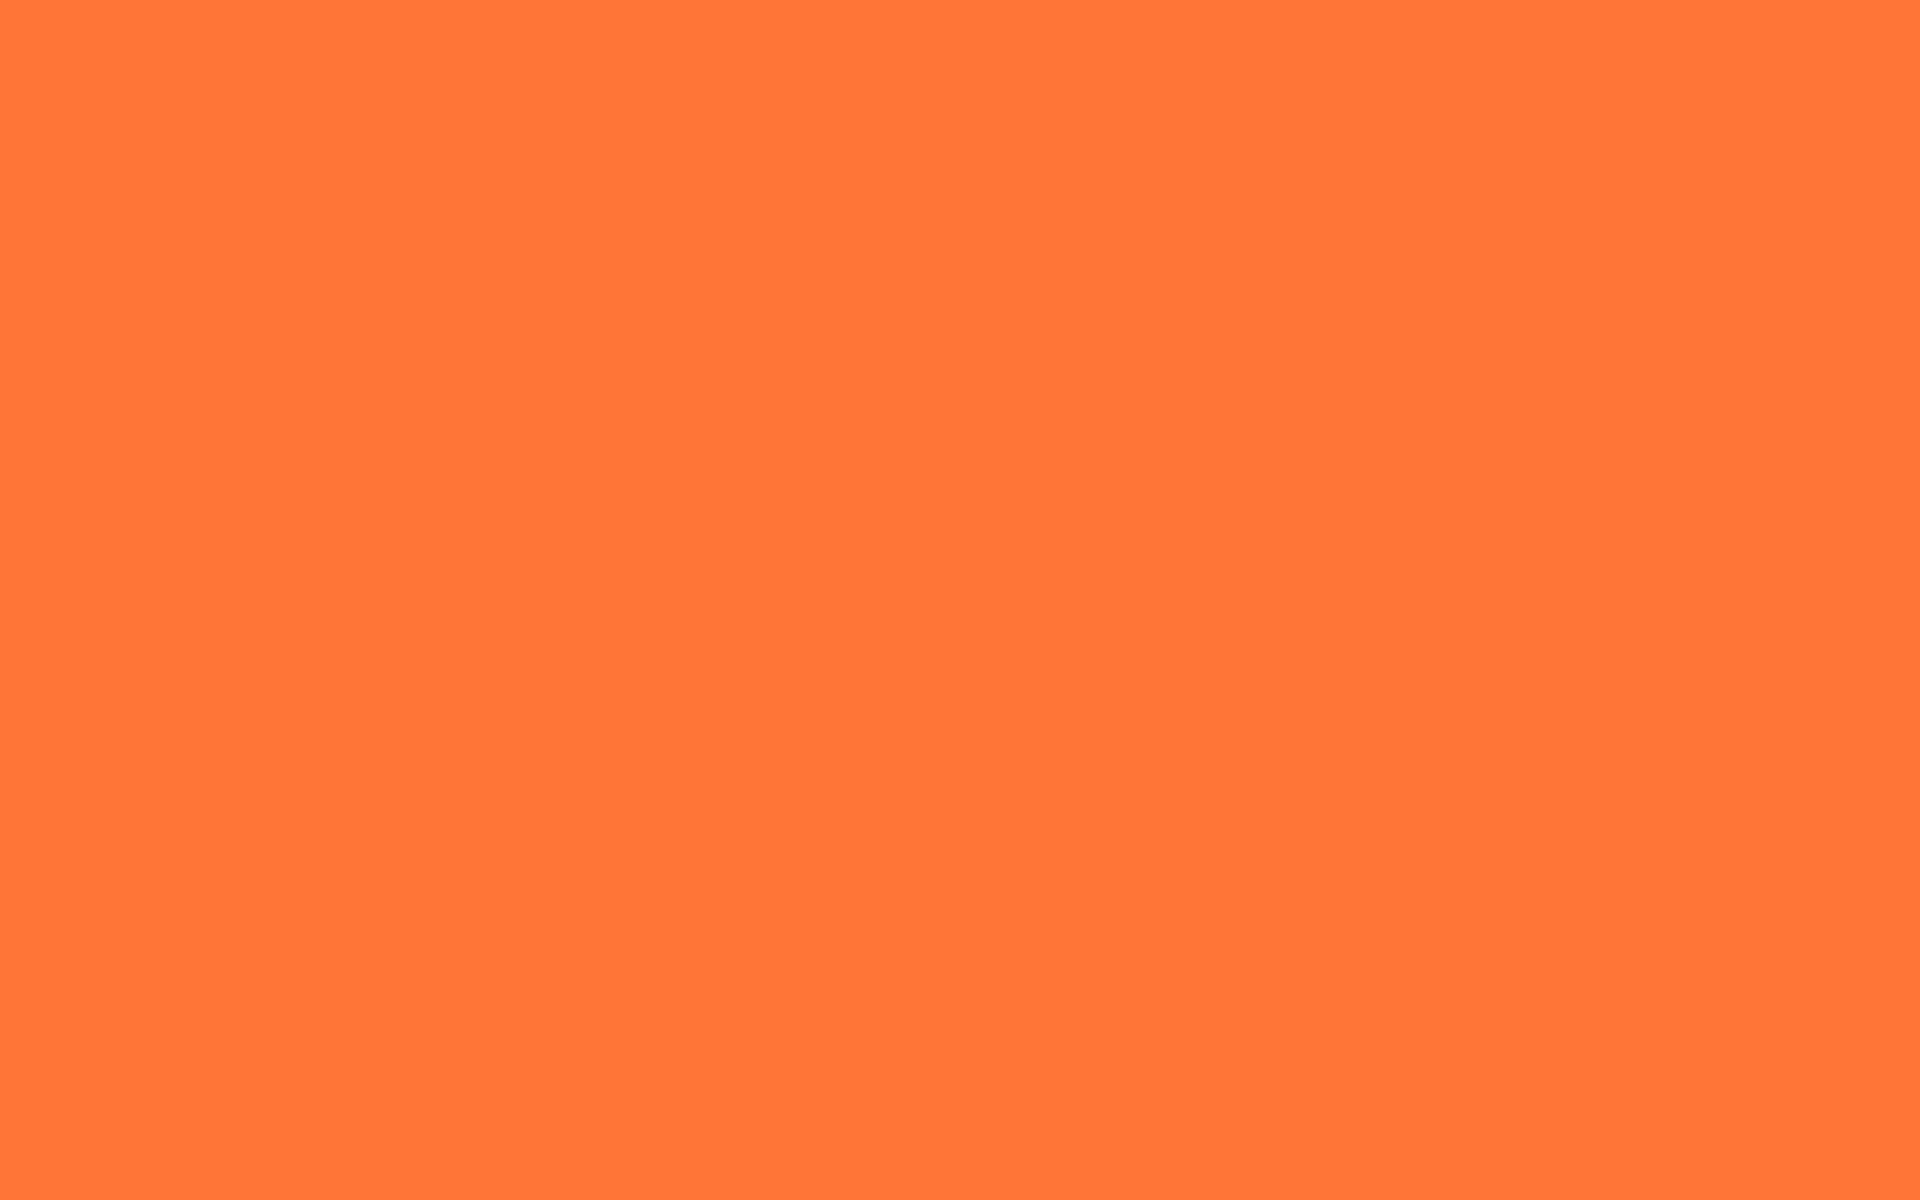 1920x1200 Orange Crayola Solid Color Background